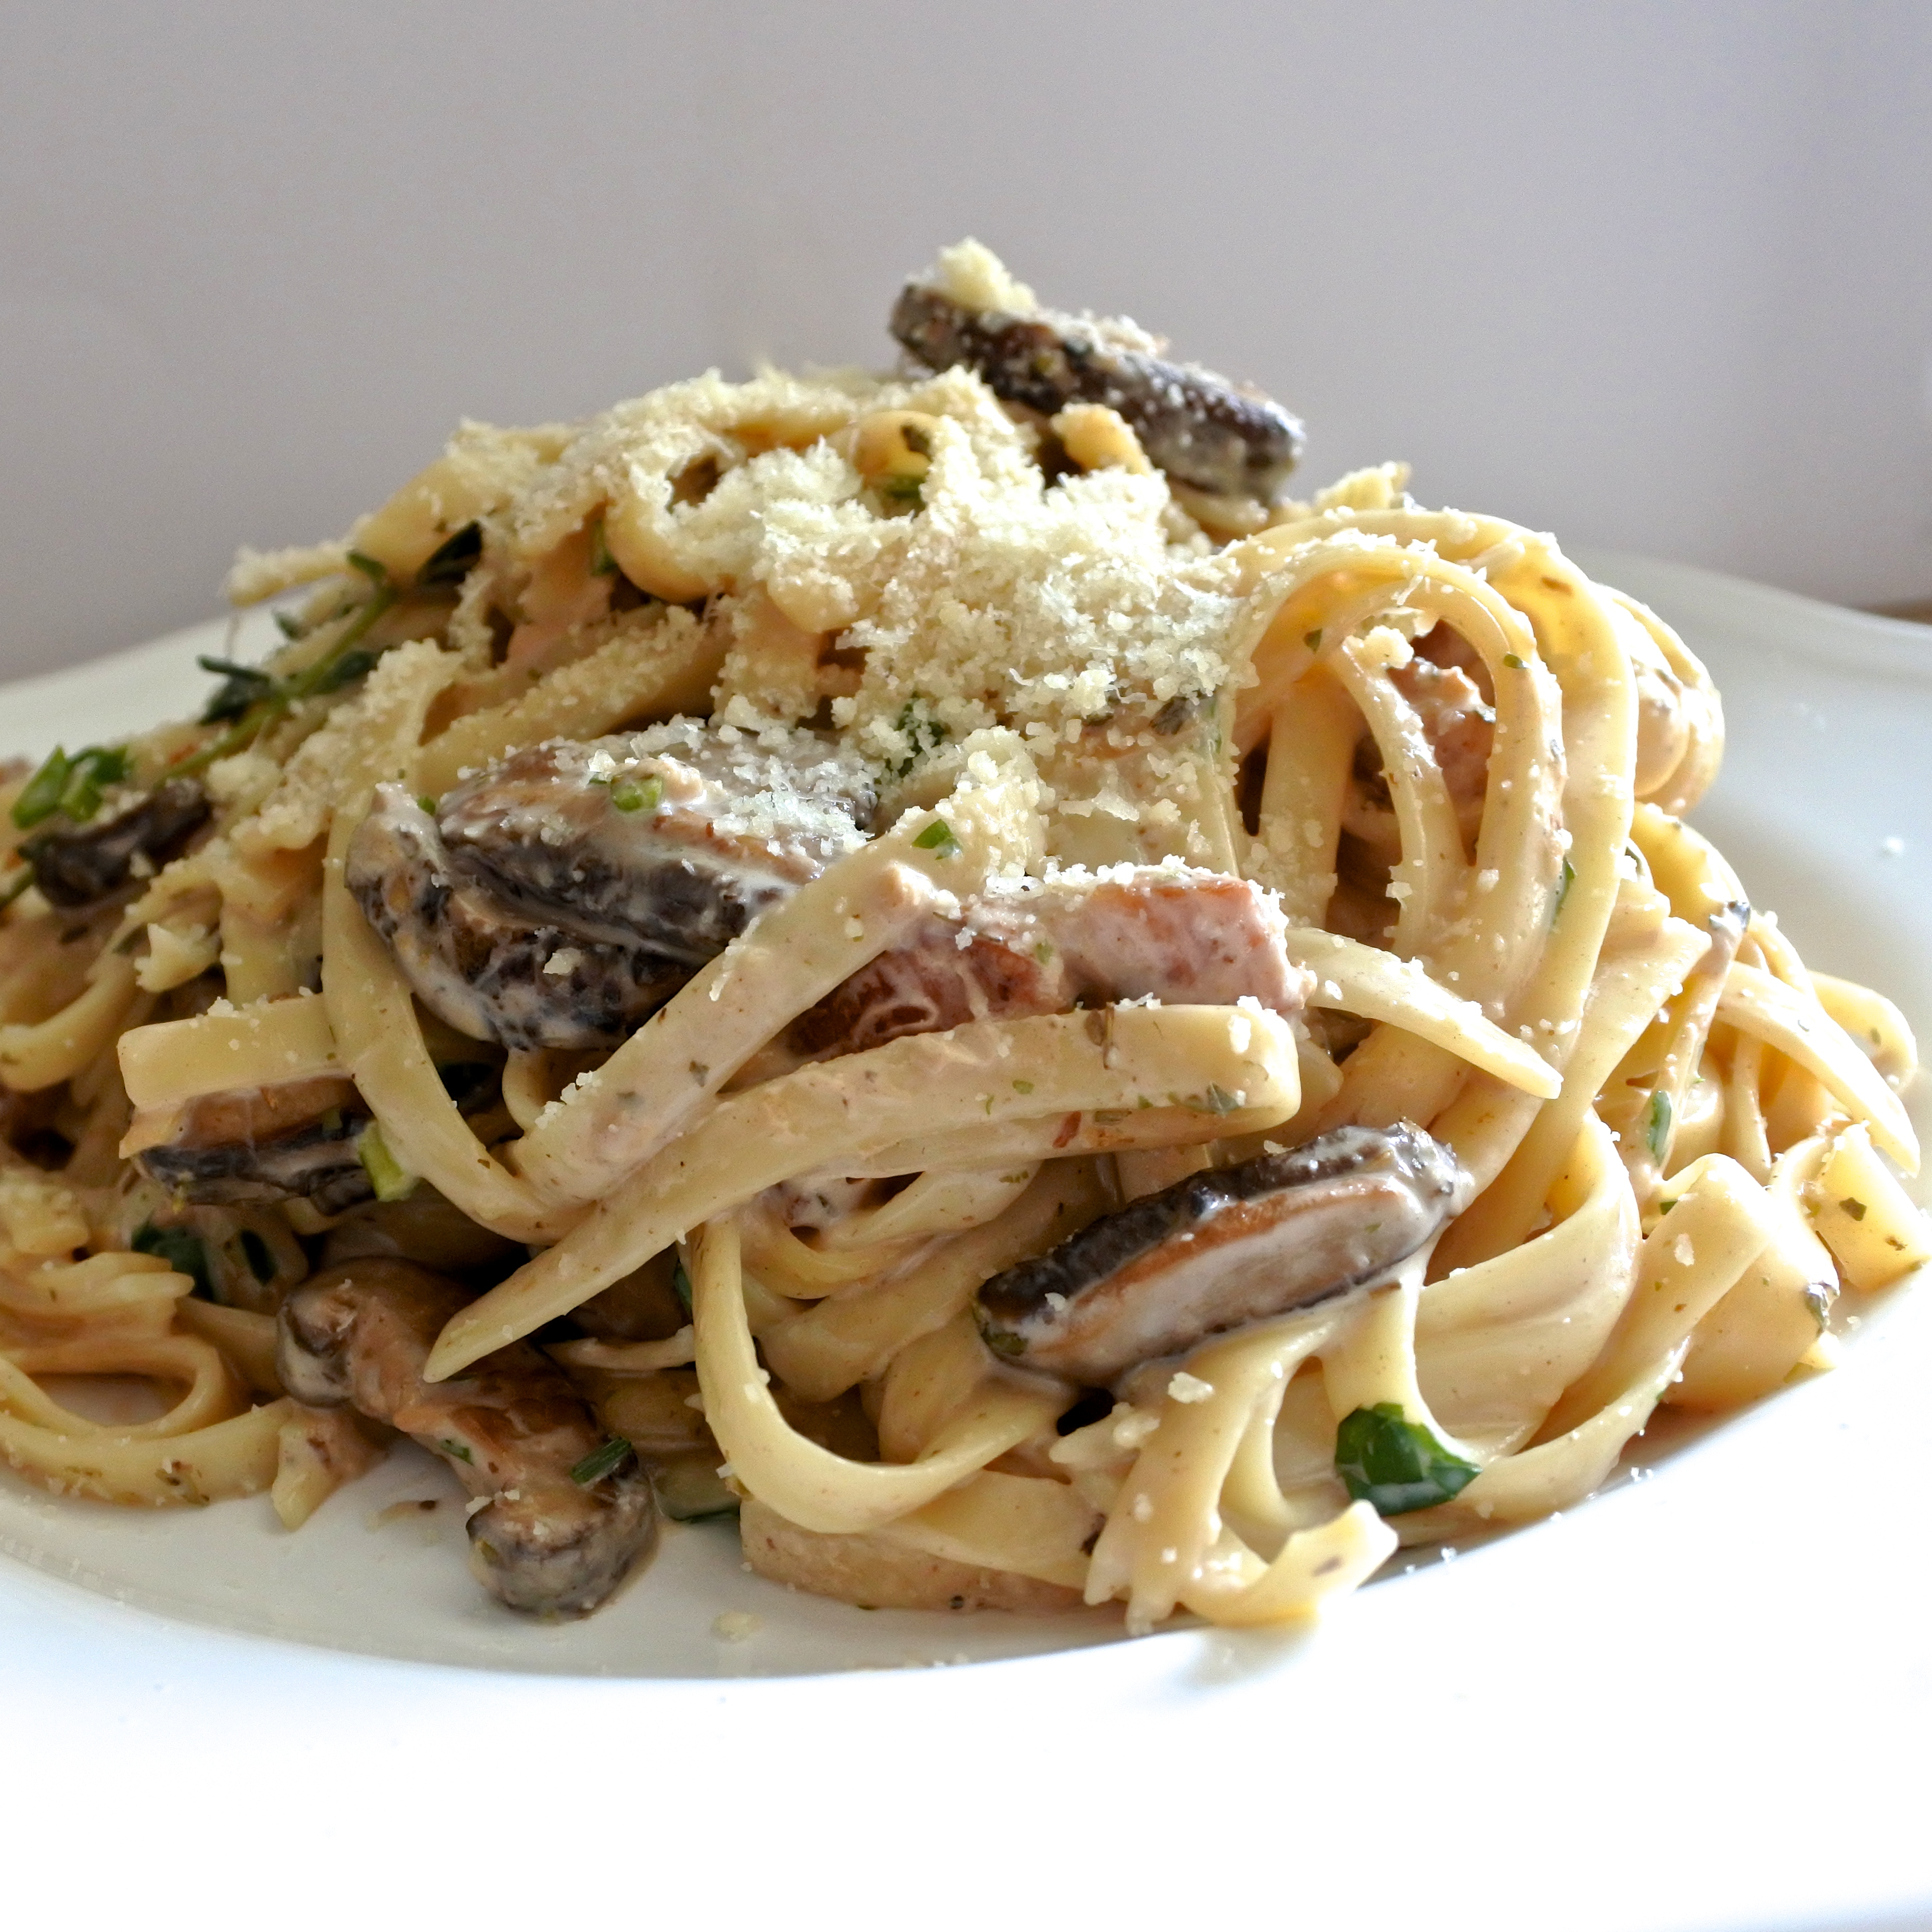 Fettuccine tossed in a Marsala cream sauce with smoked pork belly and mushrooms